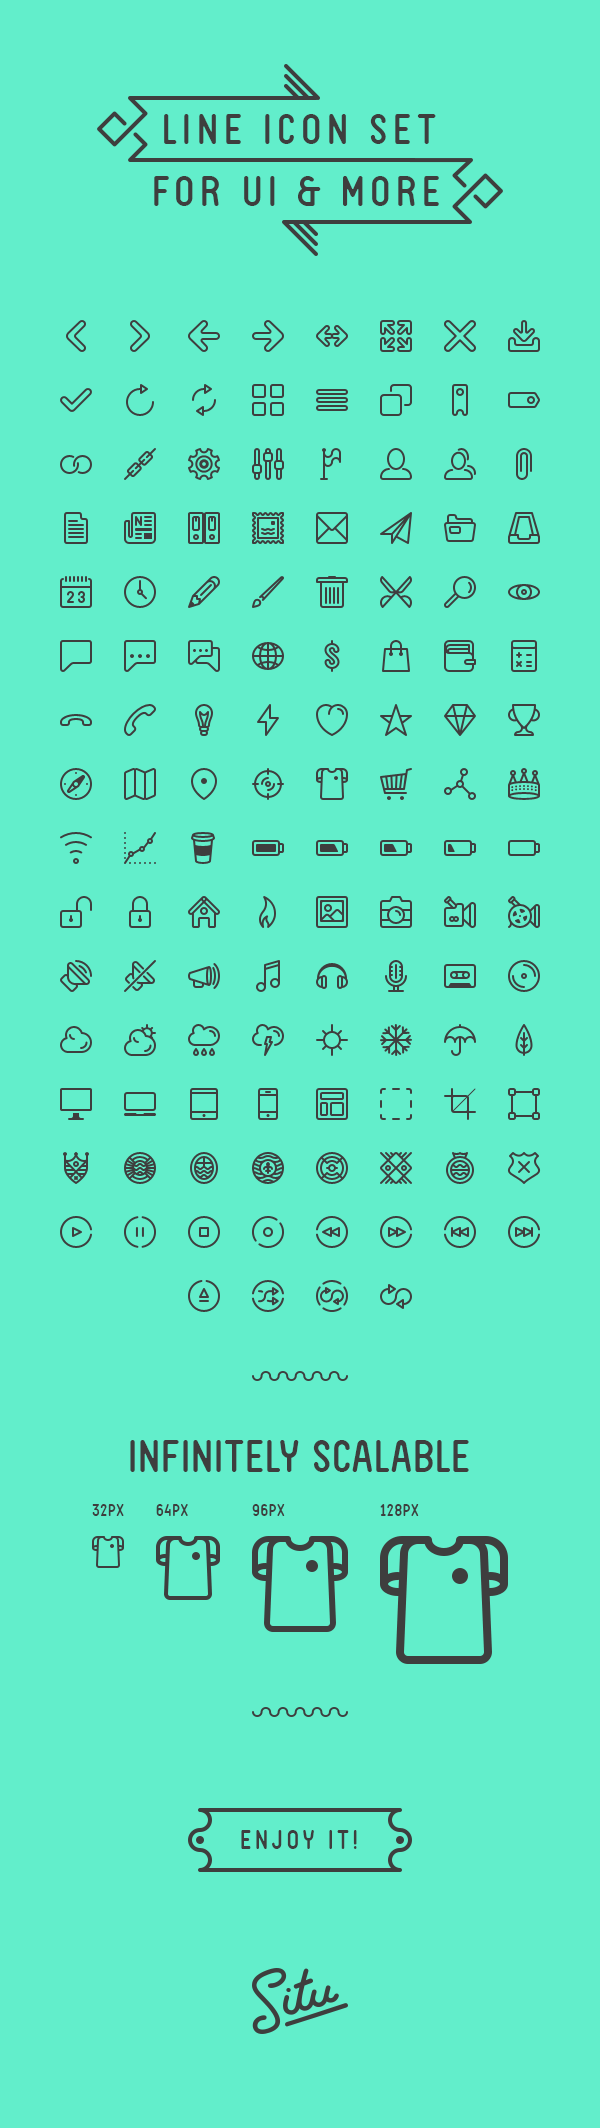 124 Free Minimal Line Icons For UI And More